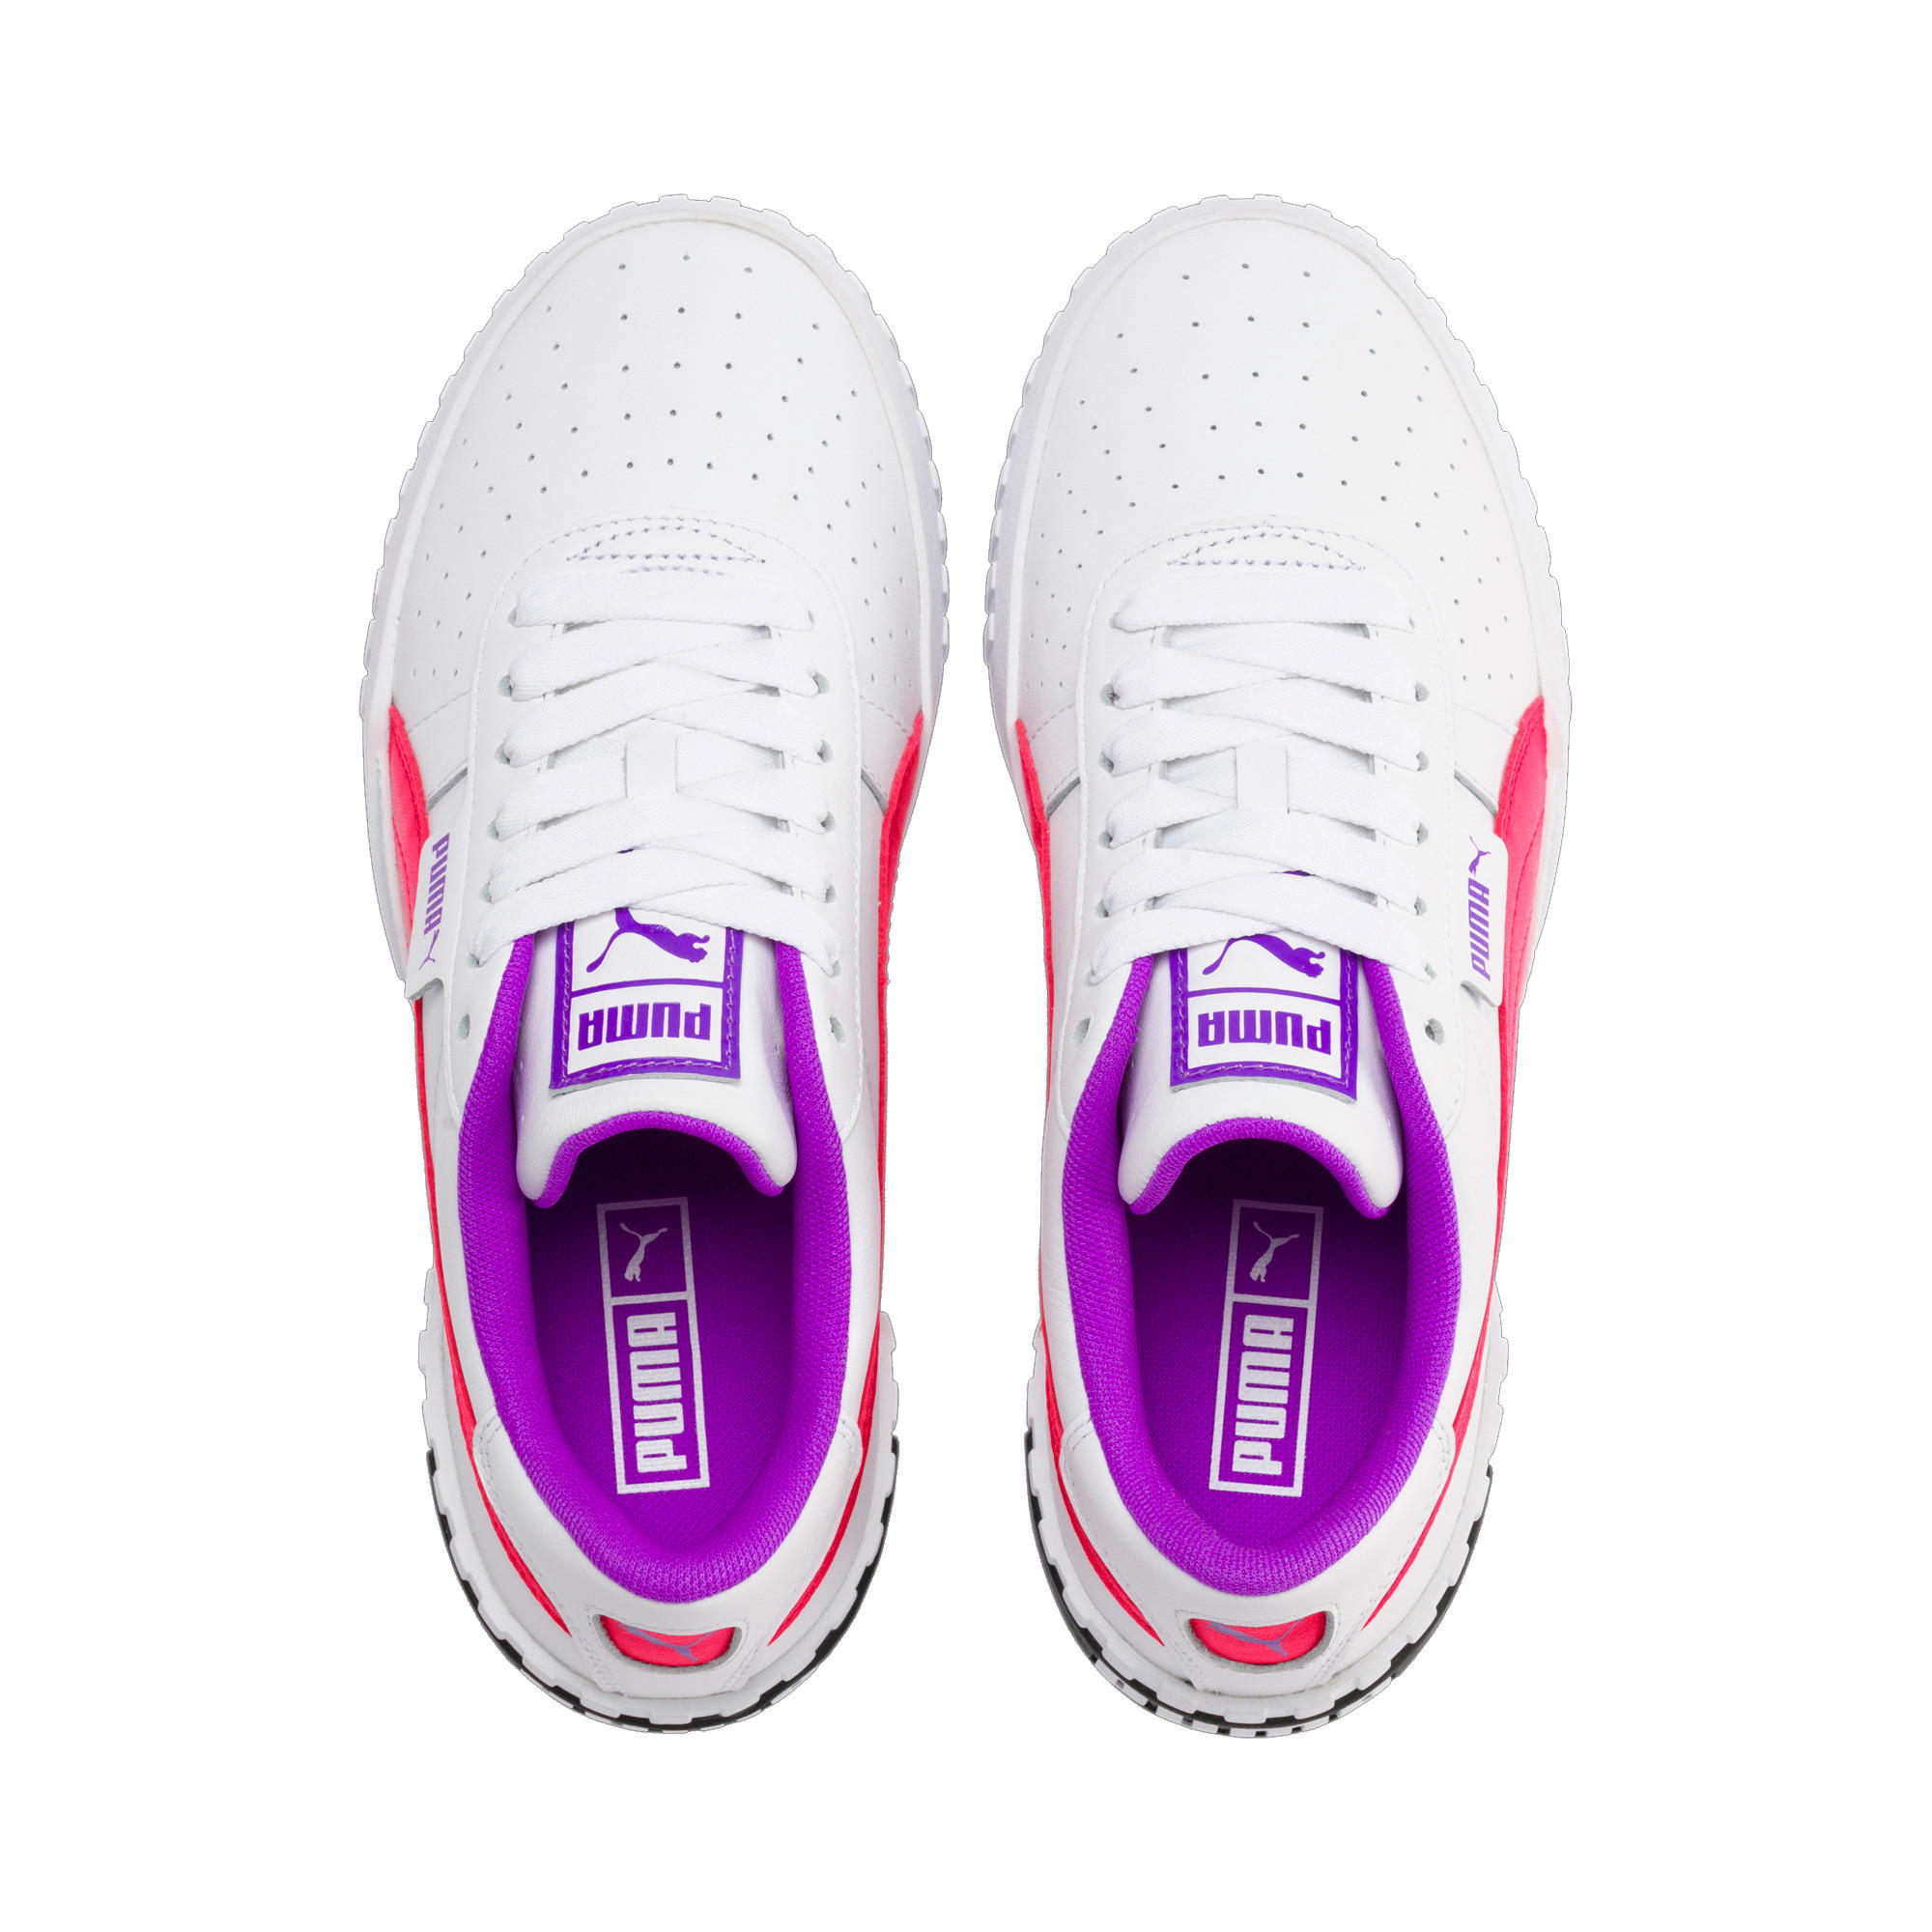 Thumbnail 7 of Cali Chase Women's Training Shoes, Puma White-Nrgy Rose, medium